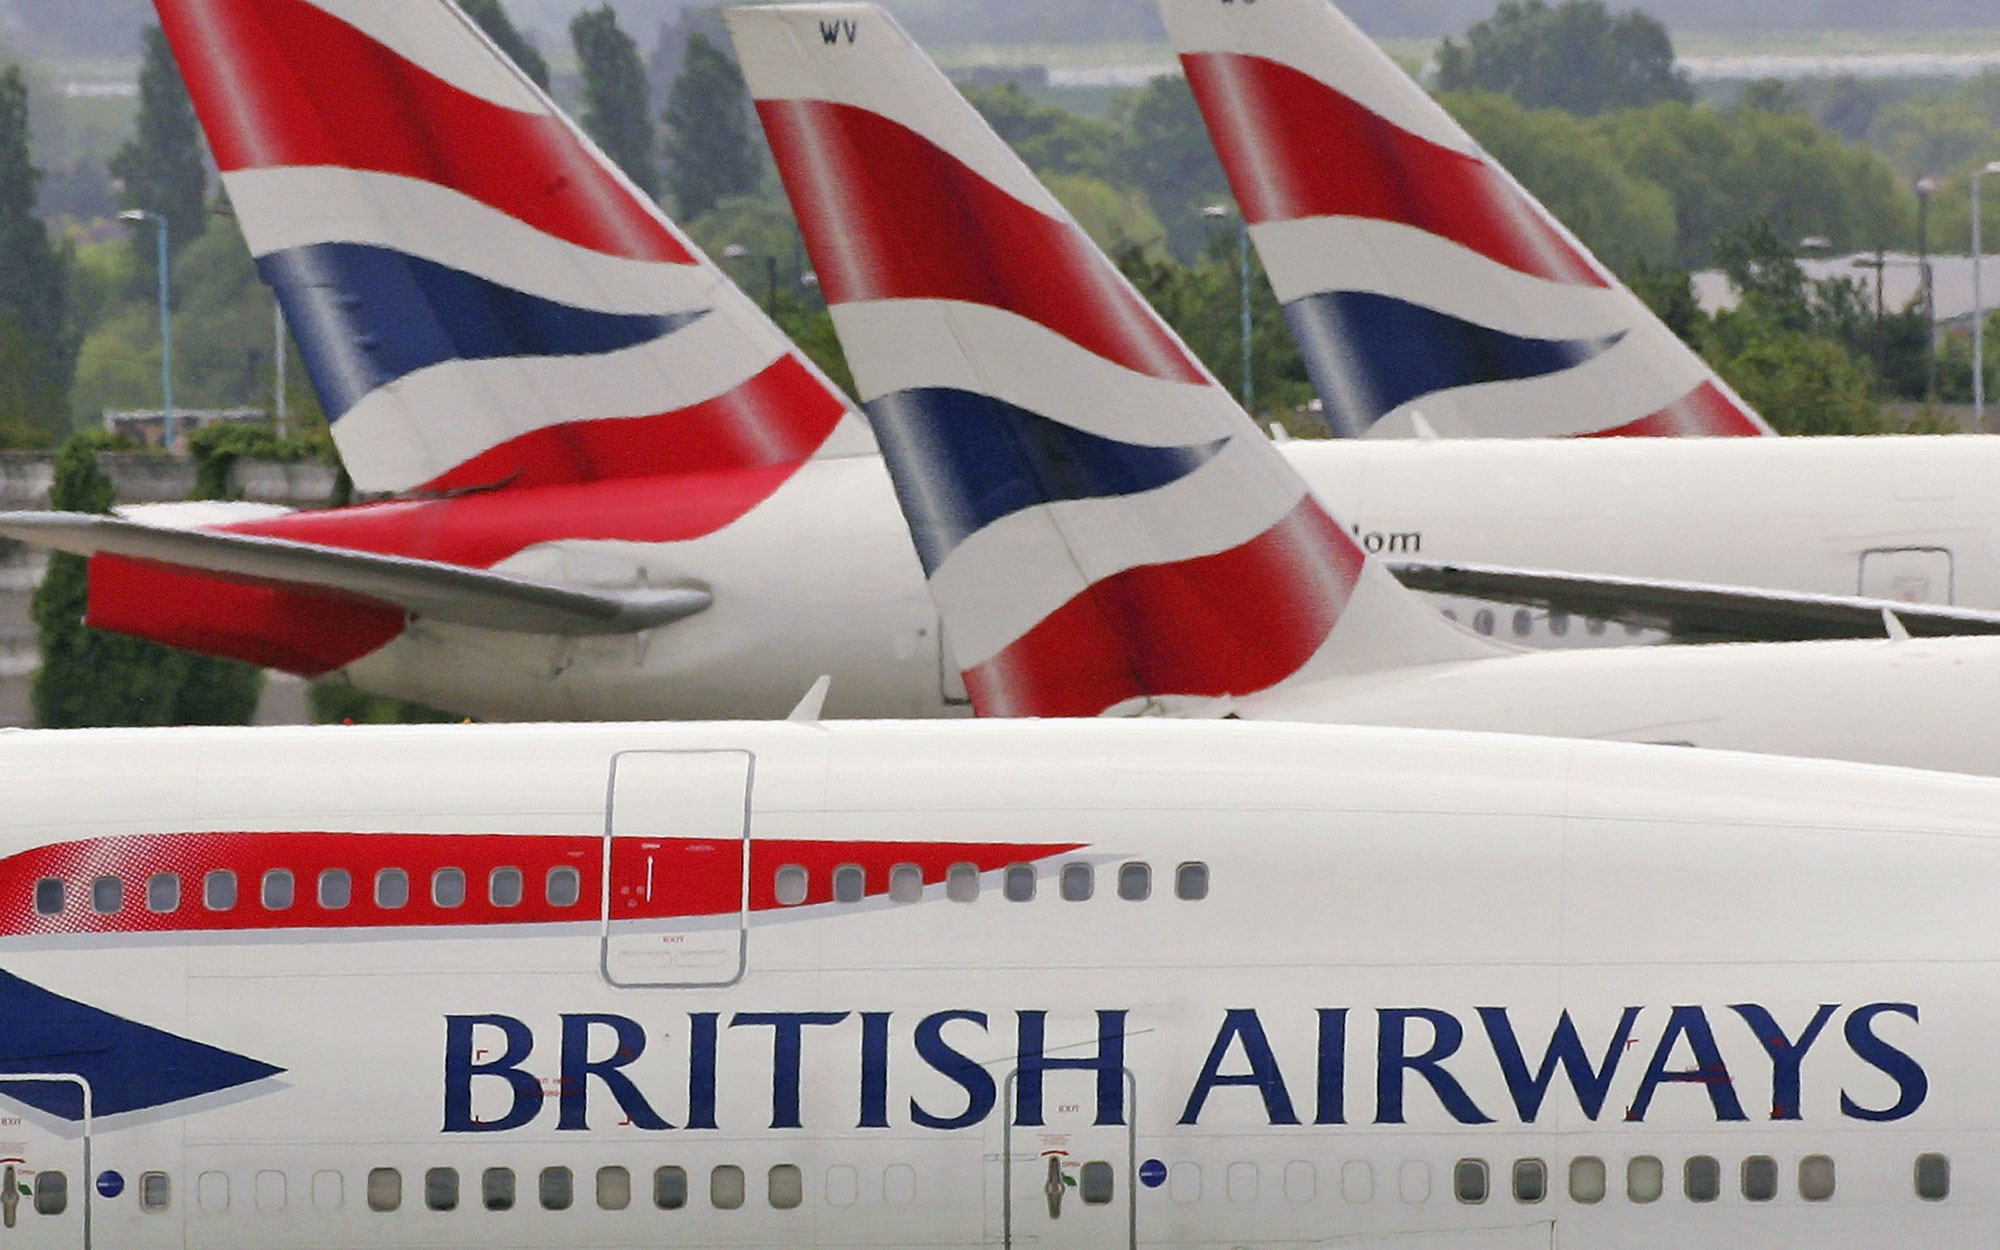 How to Save Big on Travel by Using British Airways Miles Wisely